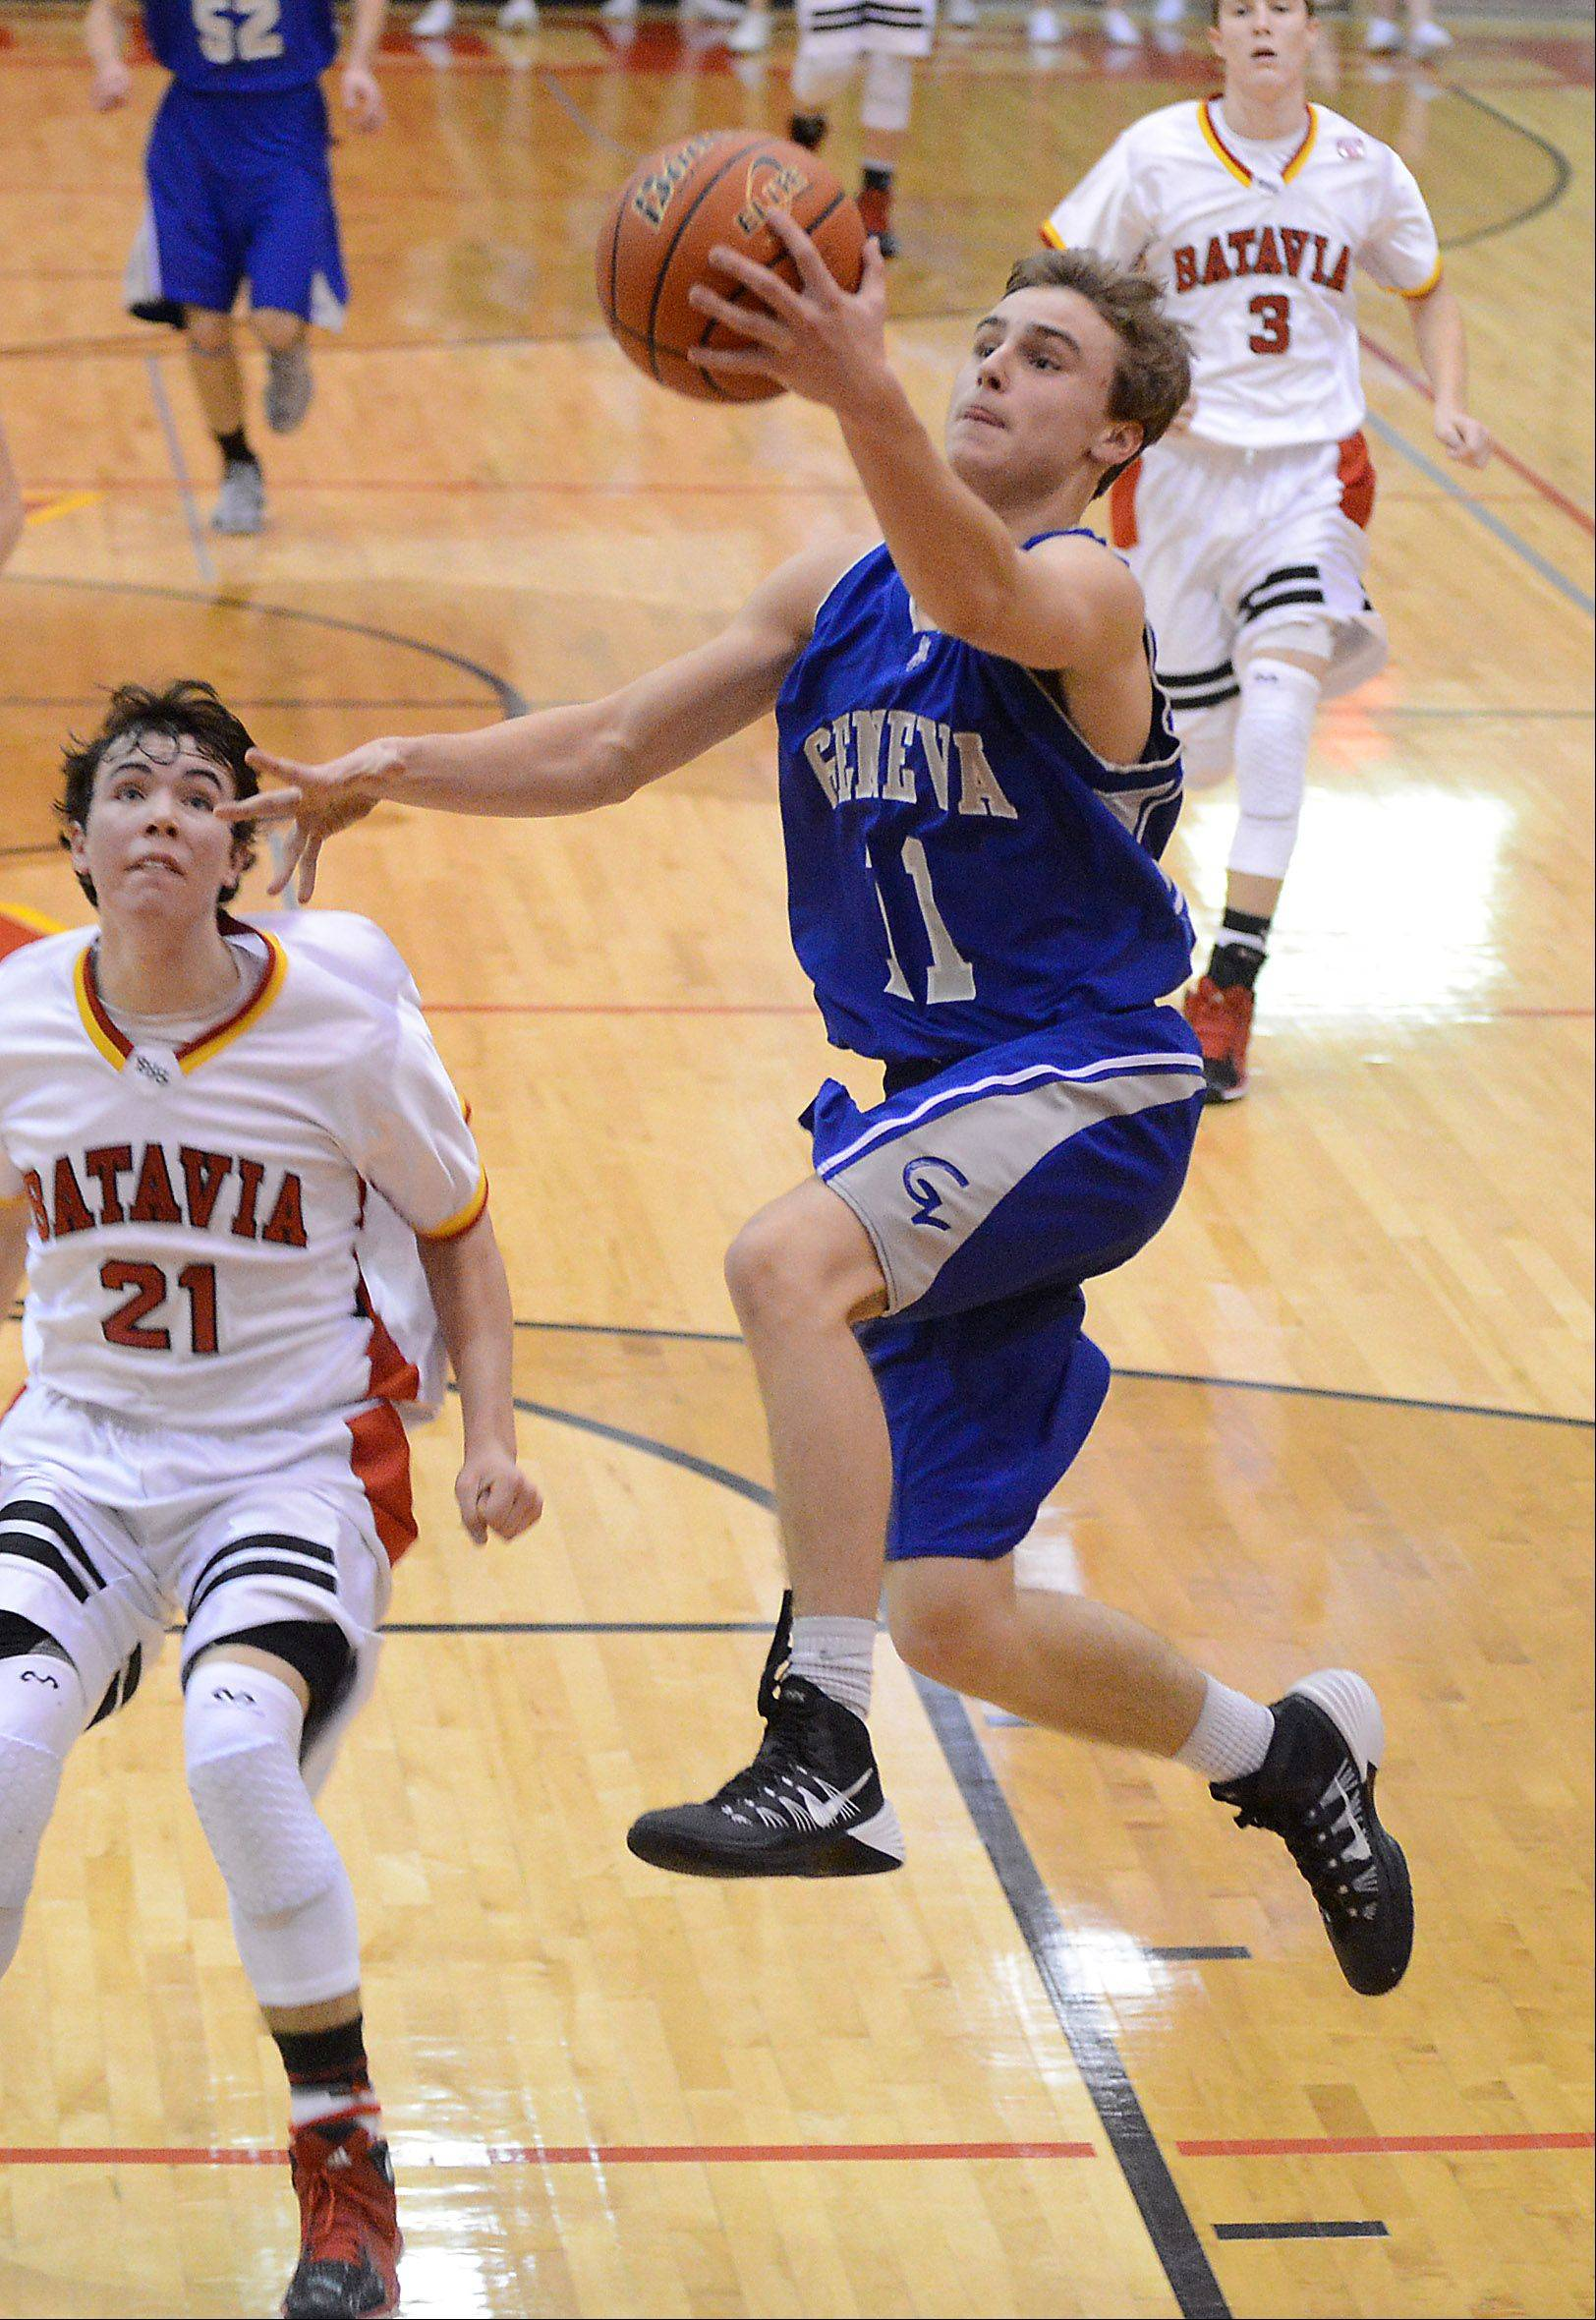 Geneva's Cam Cook drives to the basket past Batavia's Jeremy Schoessling .